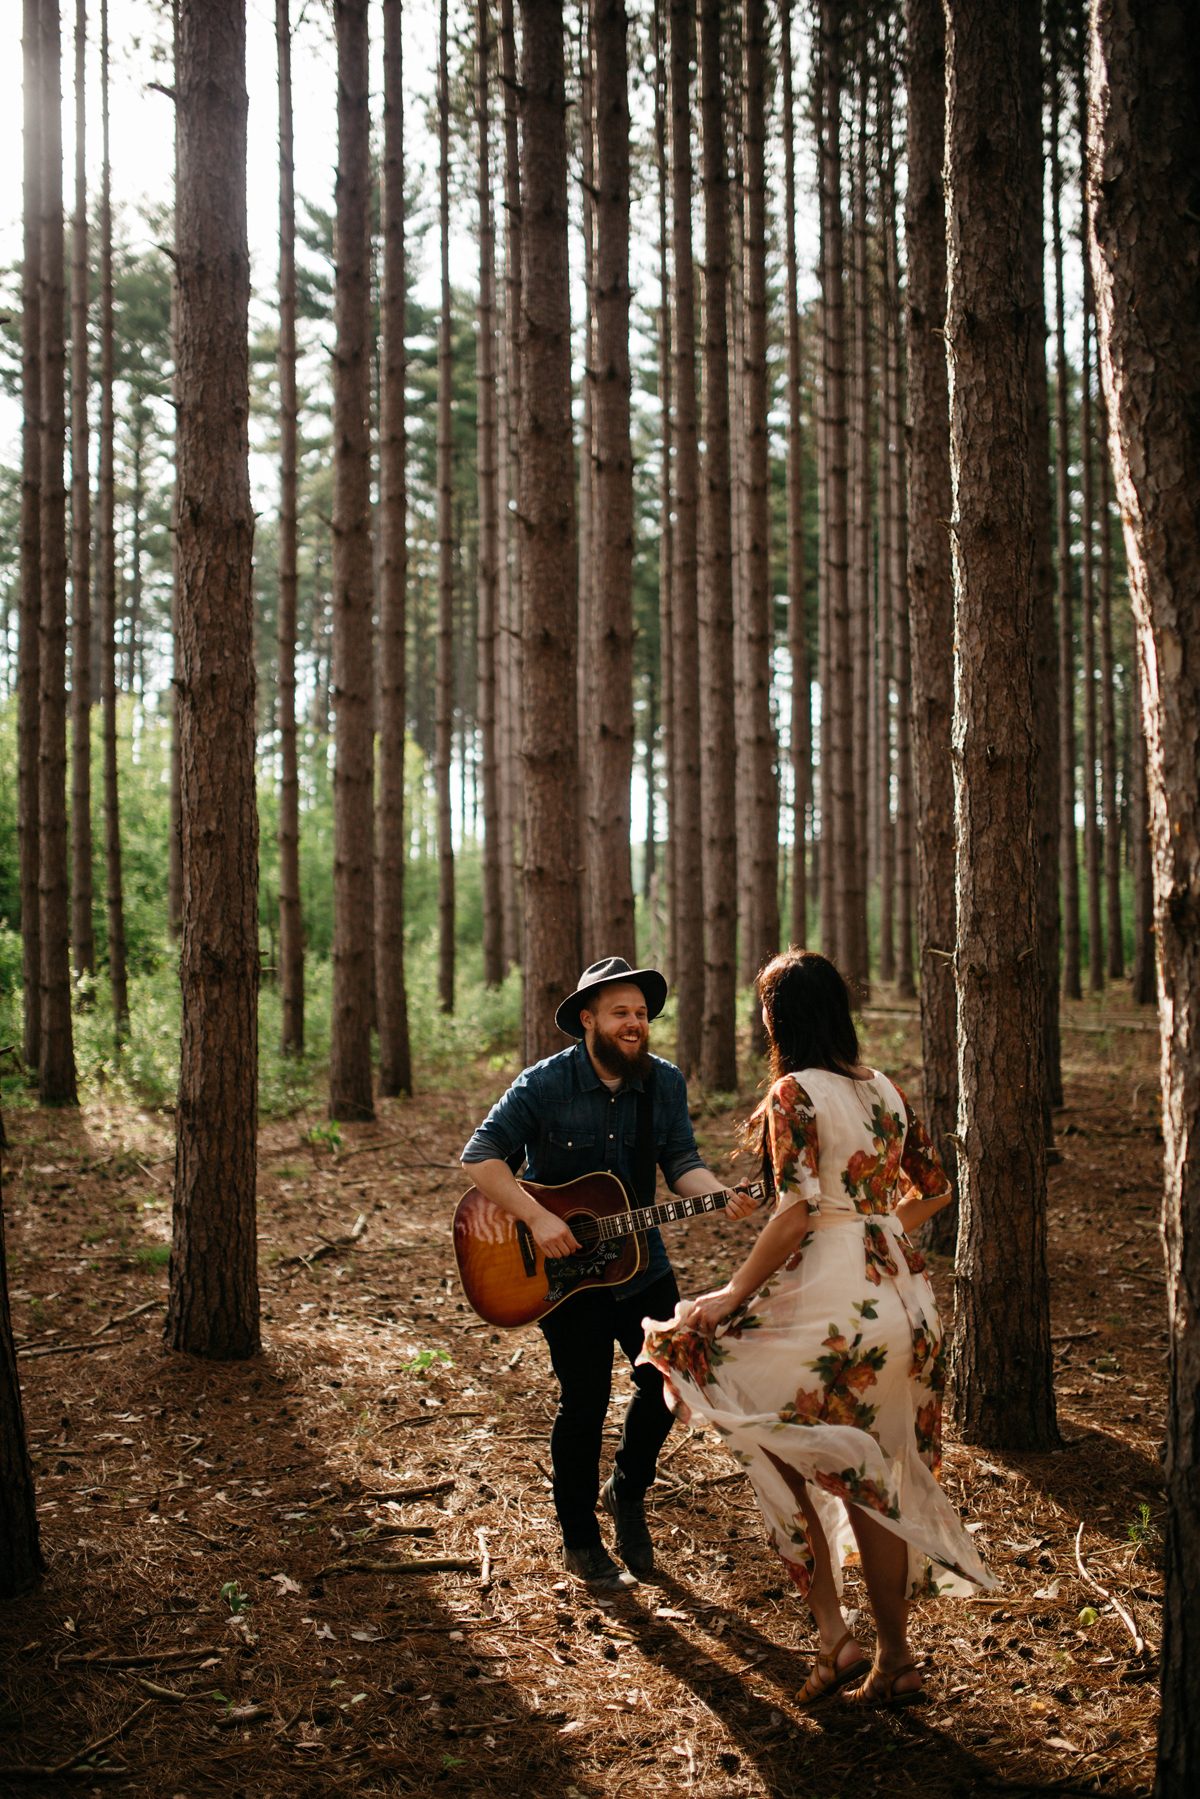 Couple_Dancing_in_the_Woods